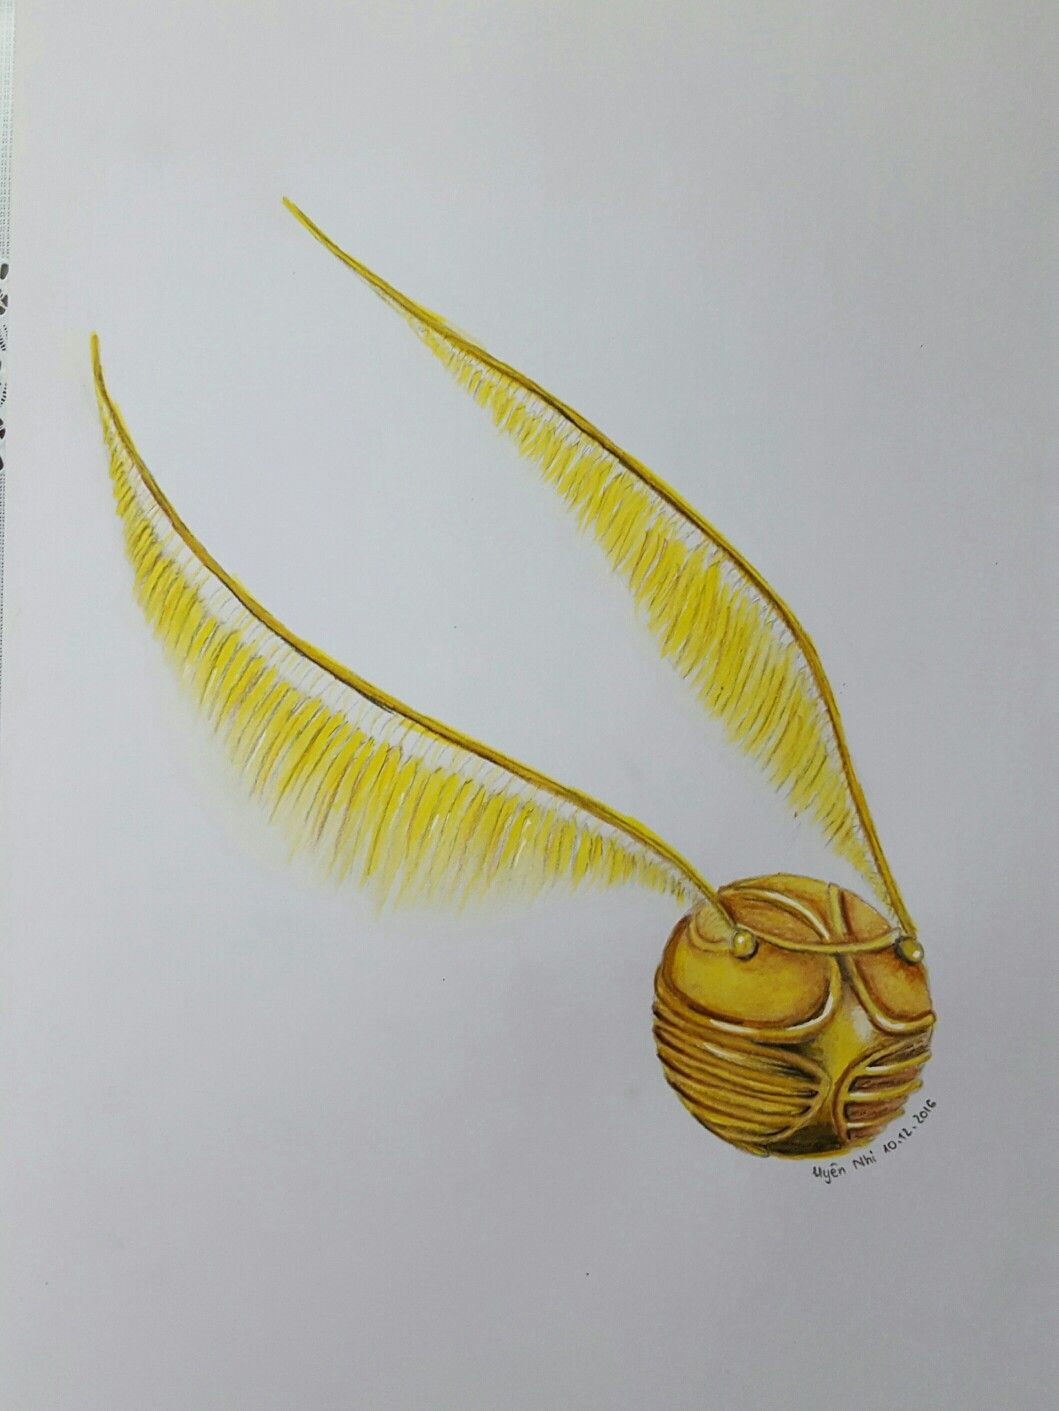 This Is My Drawing Of The Golden Snitch Harry Potter Drawings